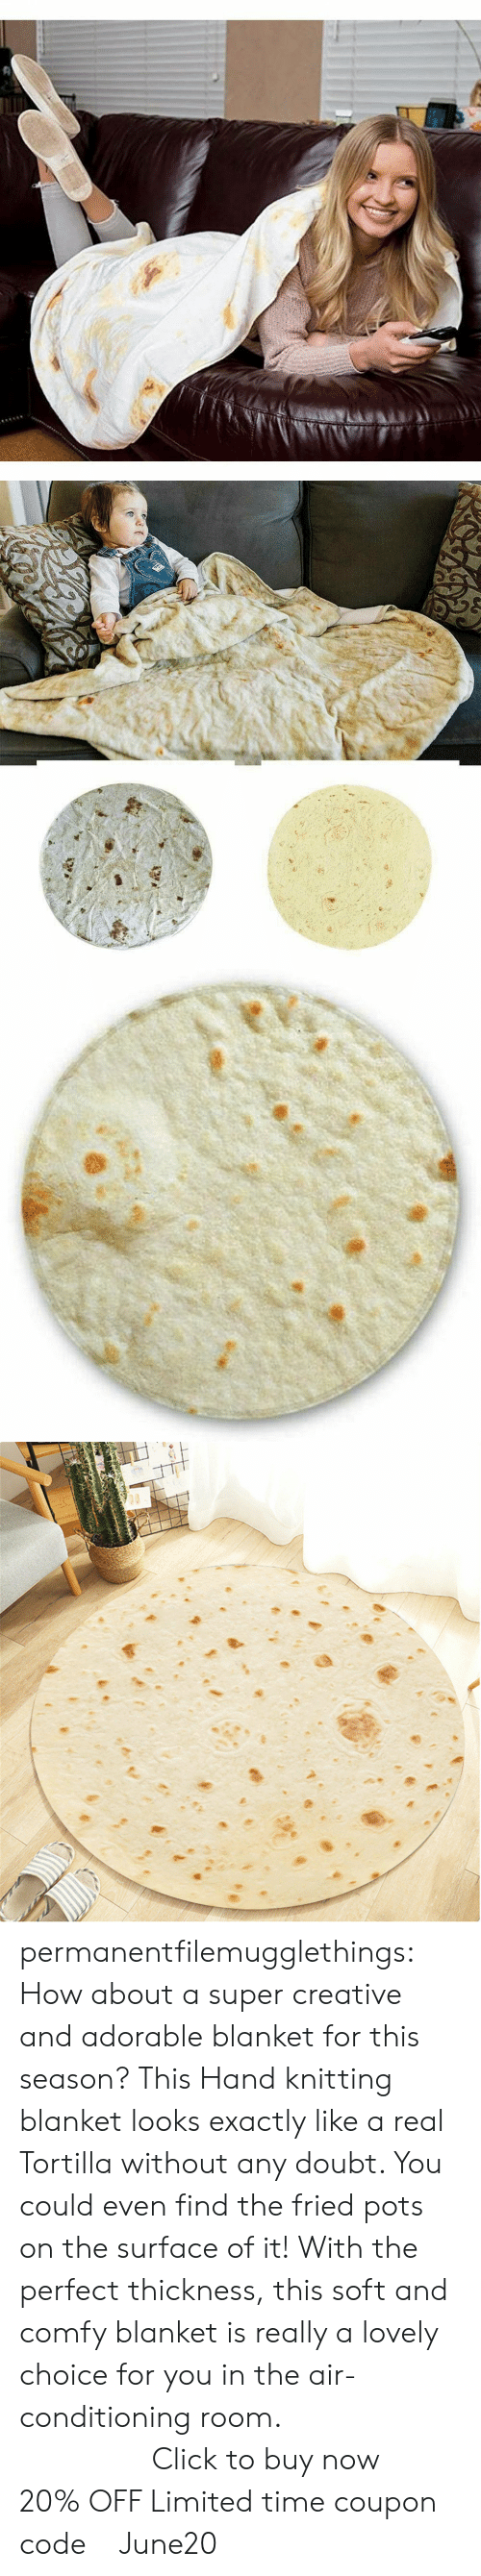 pots: permanentfilemugglethings:  How about a super creative and adorable blanket for this season? This Hand knitting blanket looks exactly like a real Tortilla without any doubt. You could even find the fried pots on the surface of it! With the perfect thickness, this soft and comfy blanket is really a lovely choice for you in the air-conditioning room.                   Click to buy now !20% OFF Limited time coupon code : June20